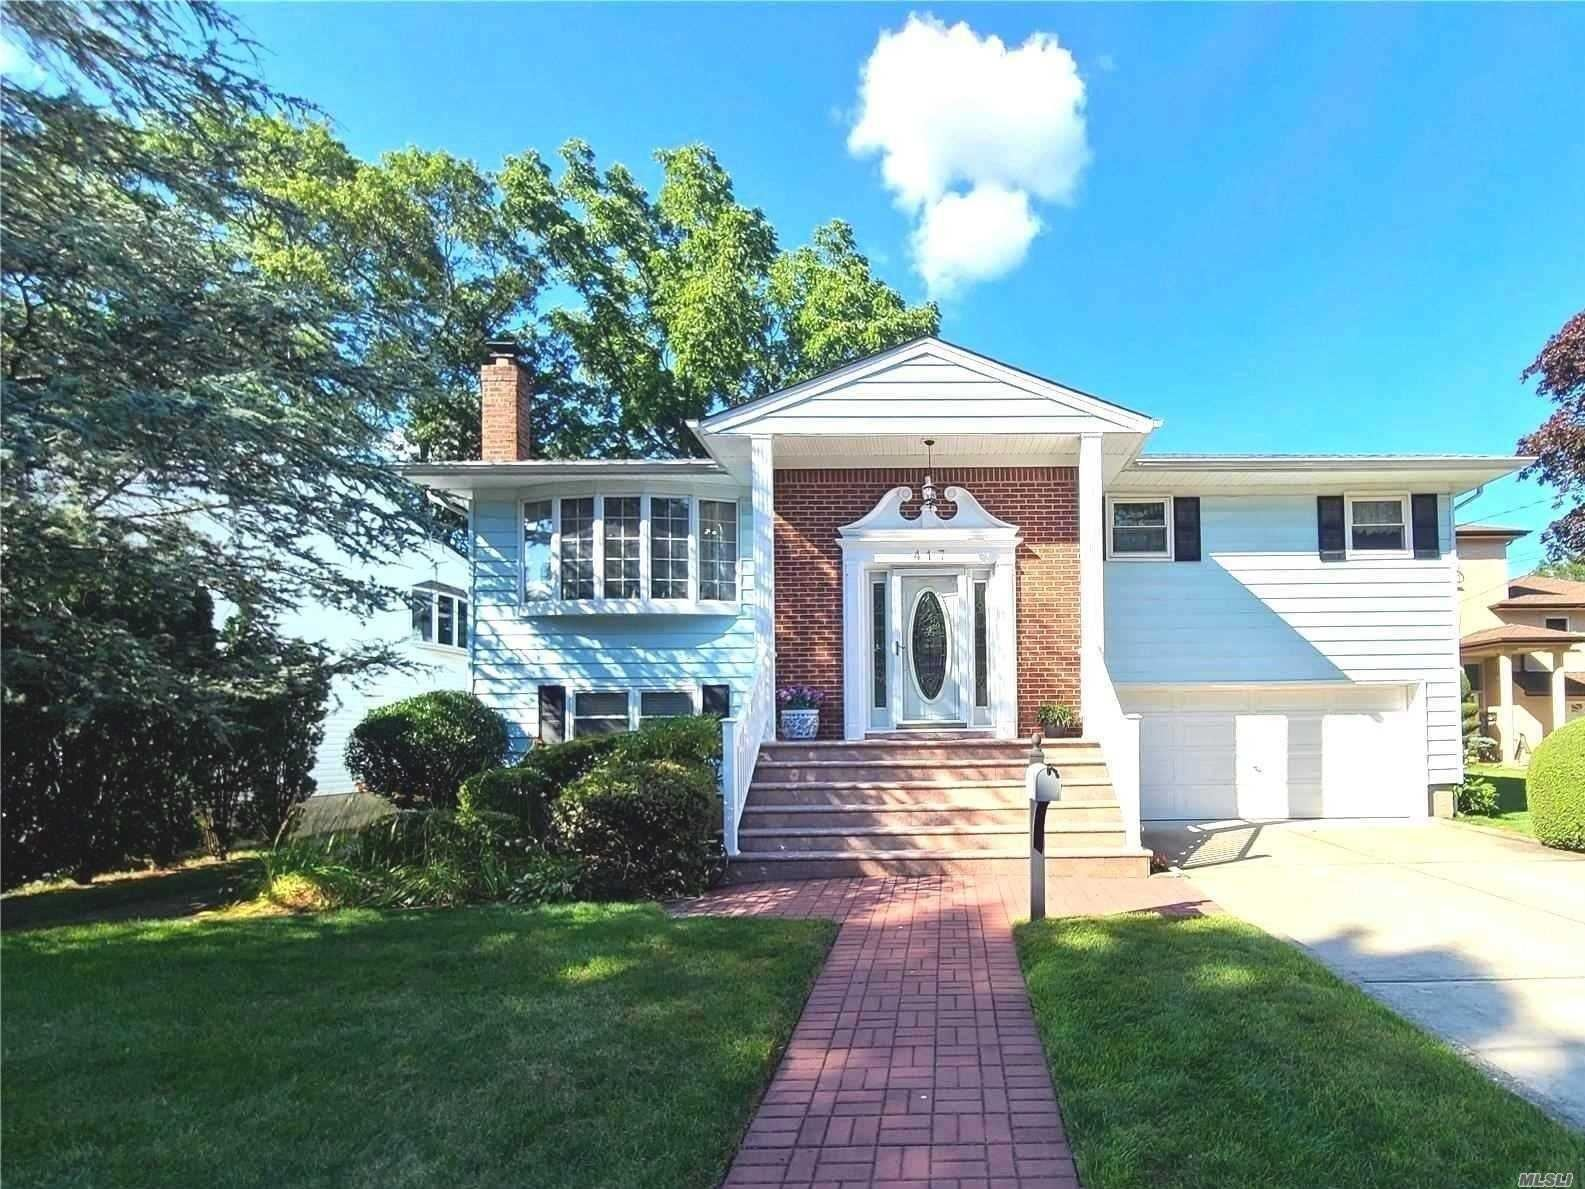 417 Berrywood Ct, West Hempstead, NY 11552 - MLS#: 3230302